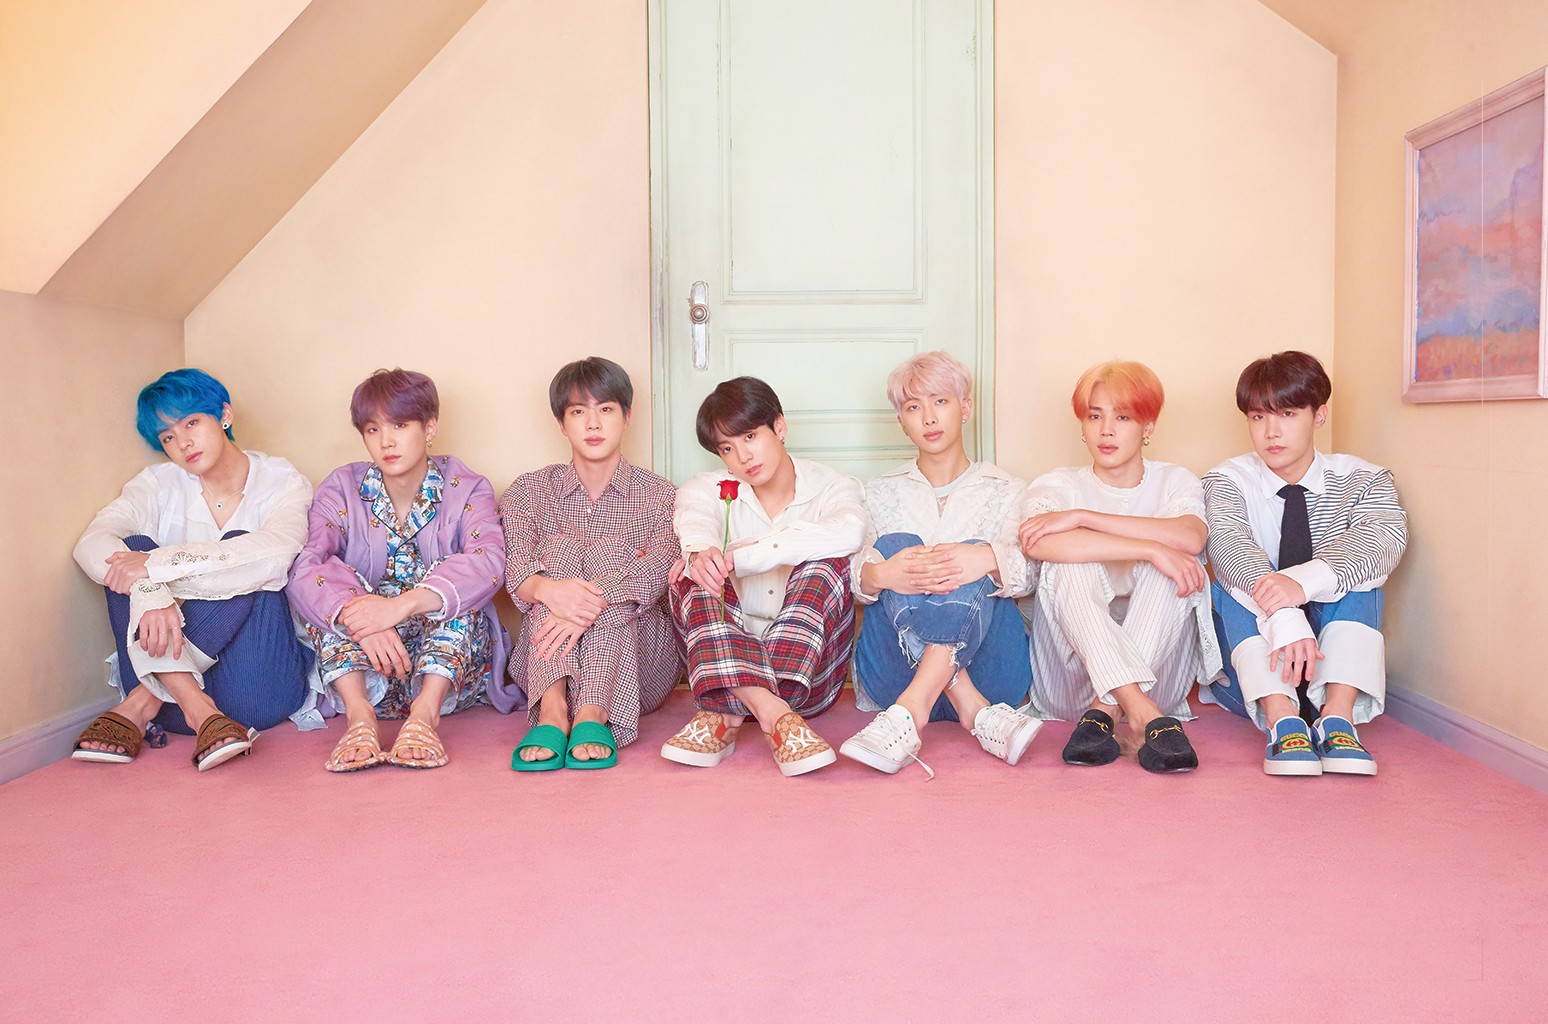 BTS press 02 photo 12 2019 billboard 1548 compressed